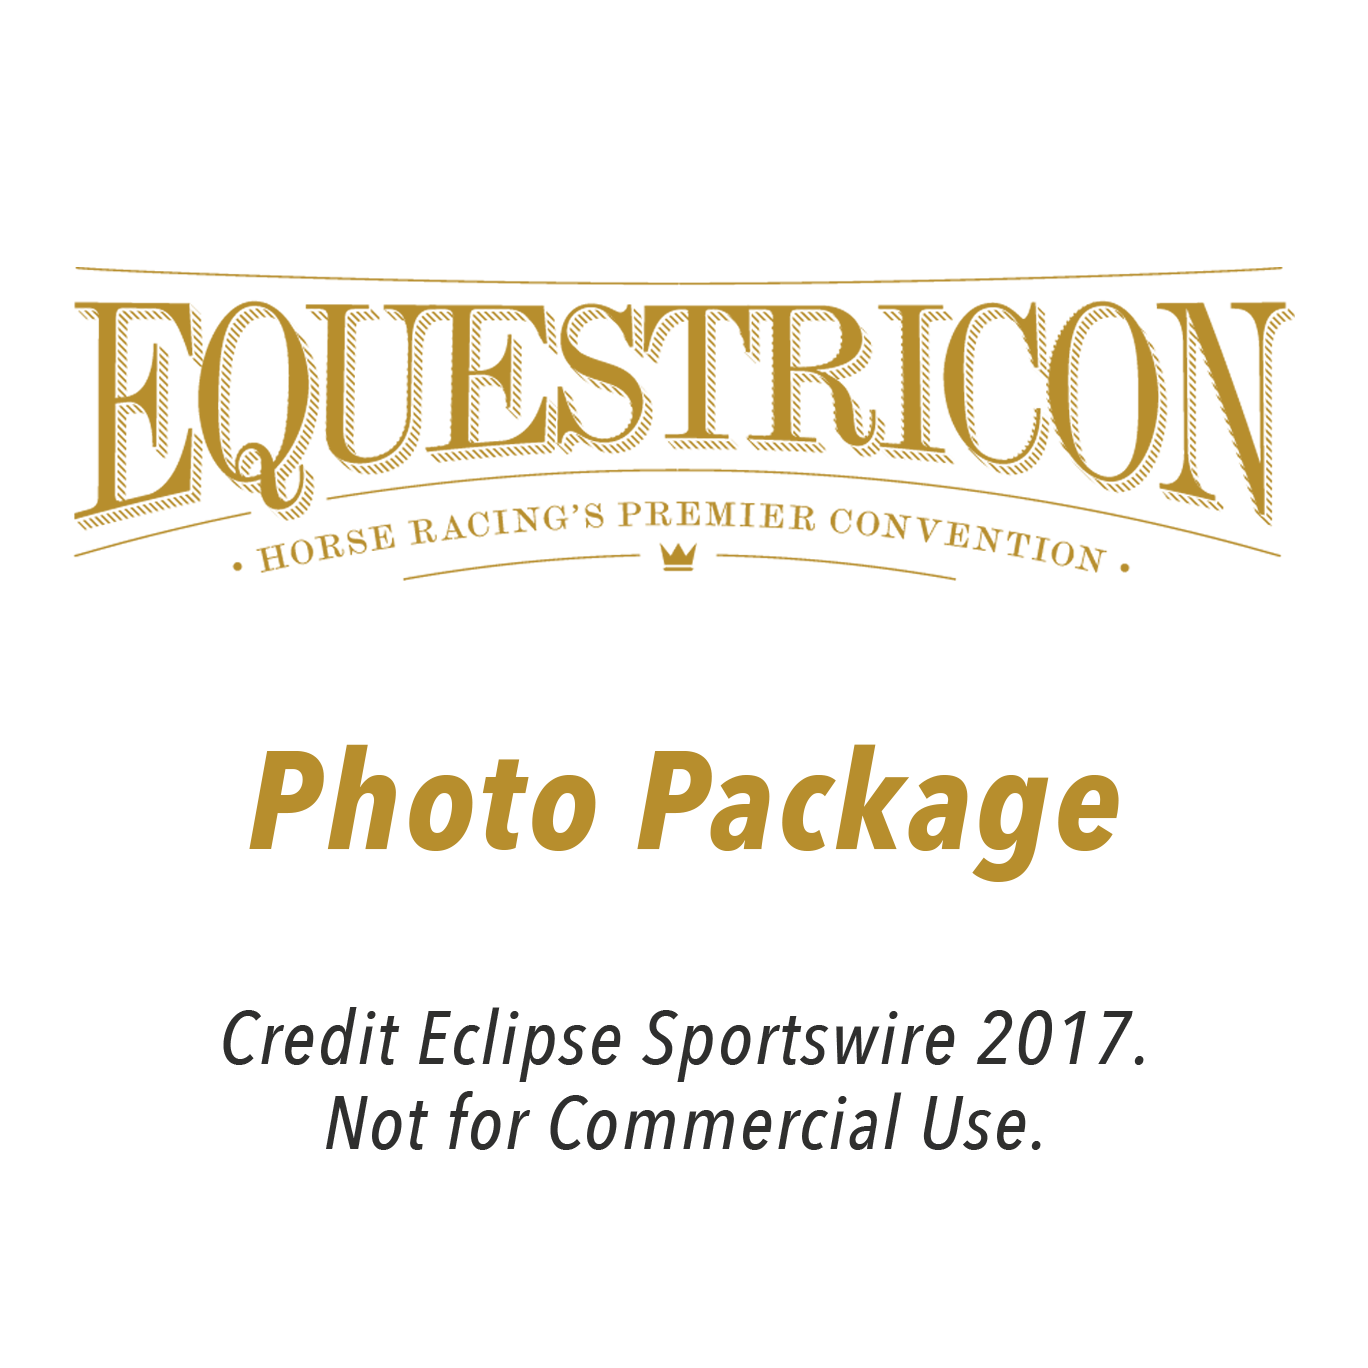 Equestricon_photopackage.png